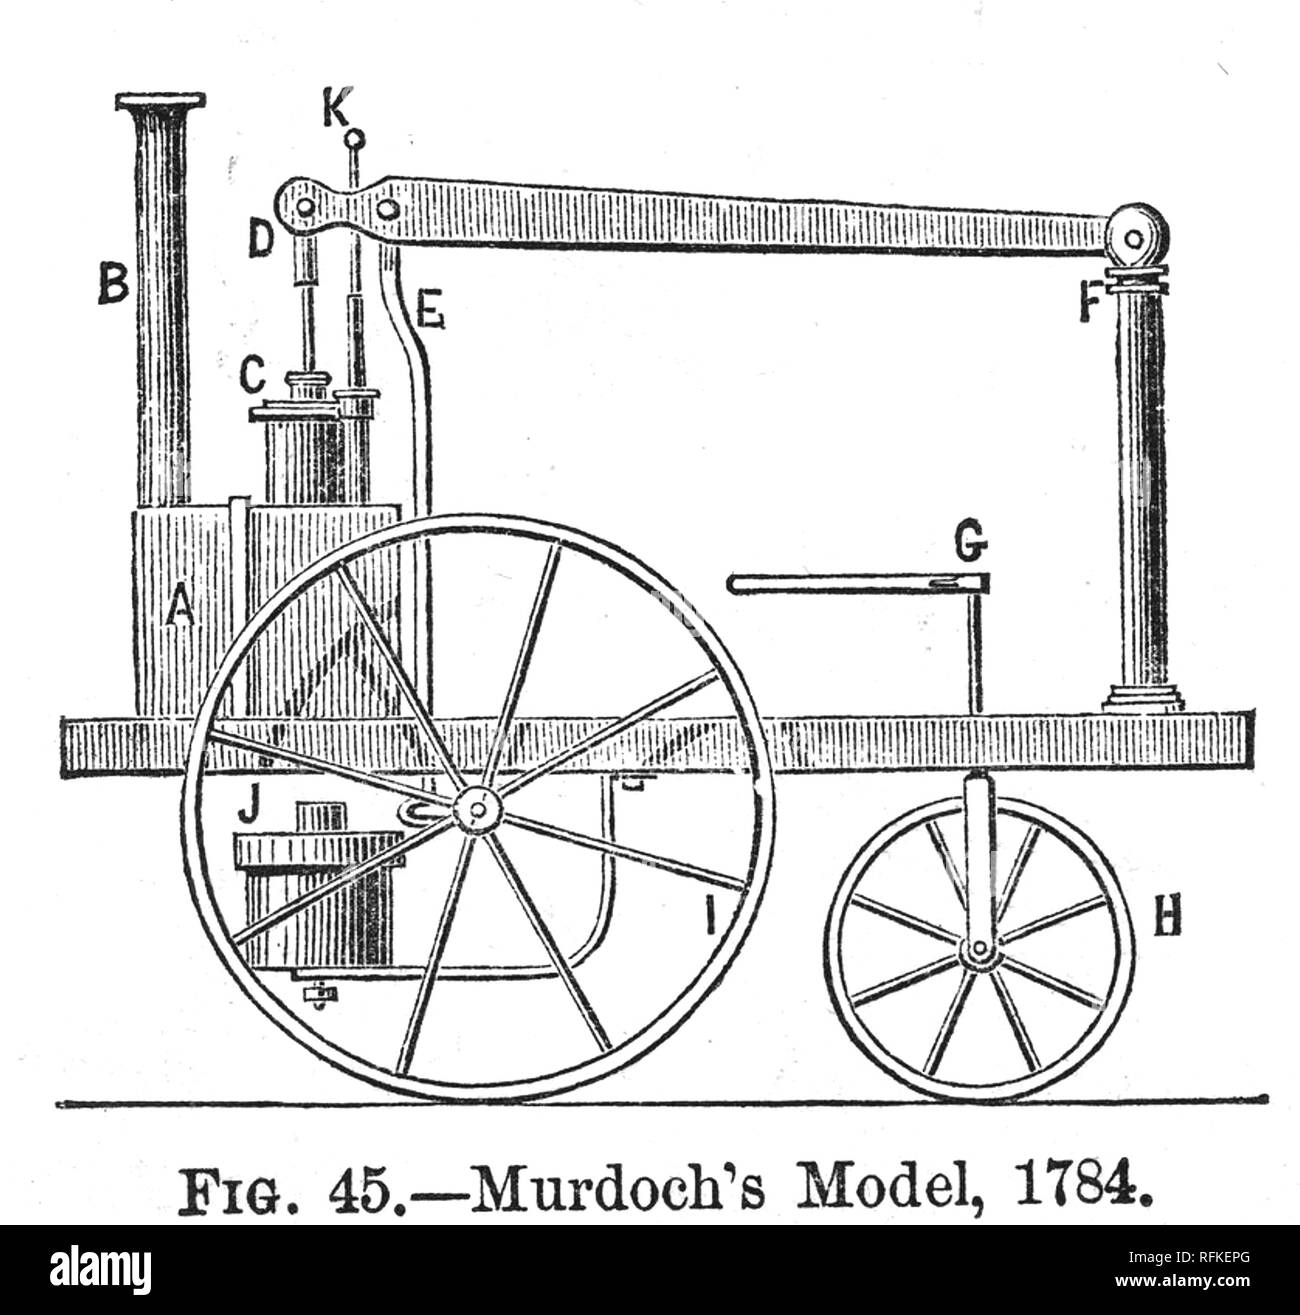 WILLIAM MURDOCH (1754-1839) Scottish engineer and inventor. Contemporary diagram of his oscillating cylinder steam engine about 1795 - Stock Image